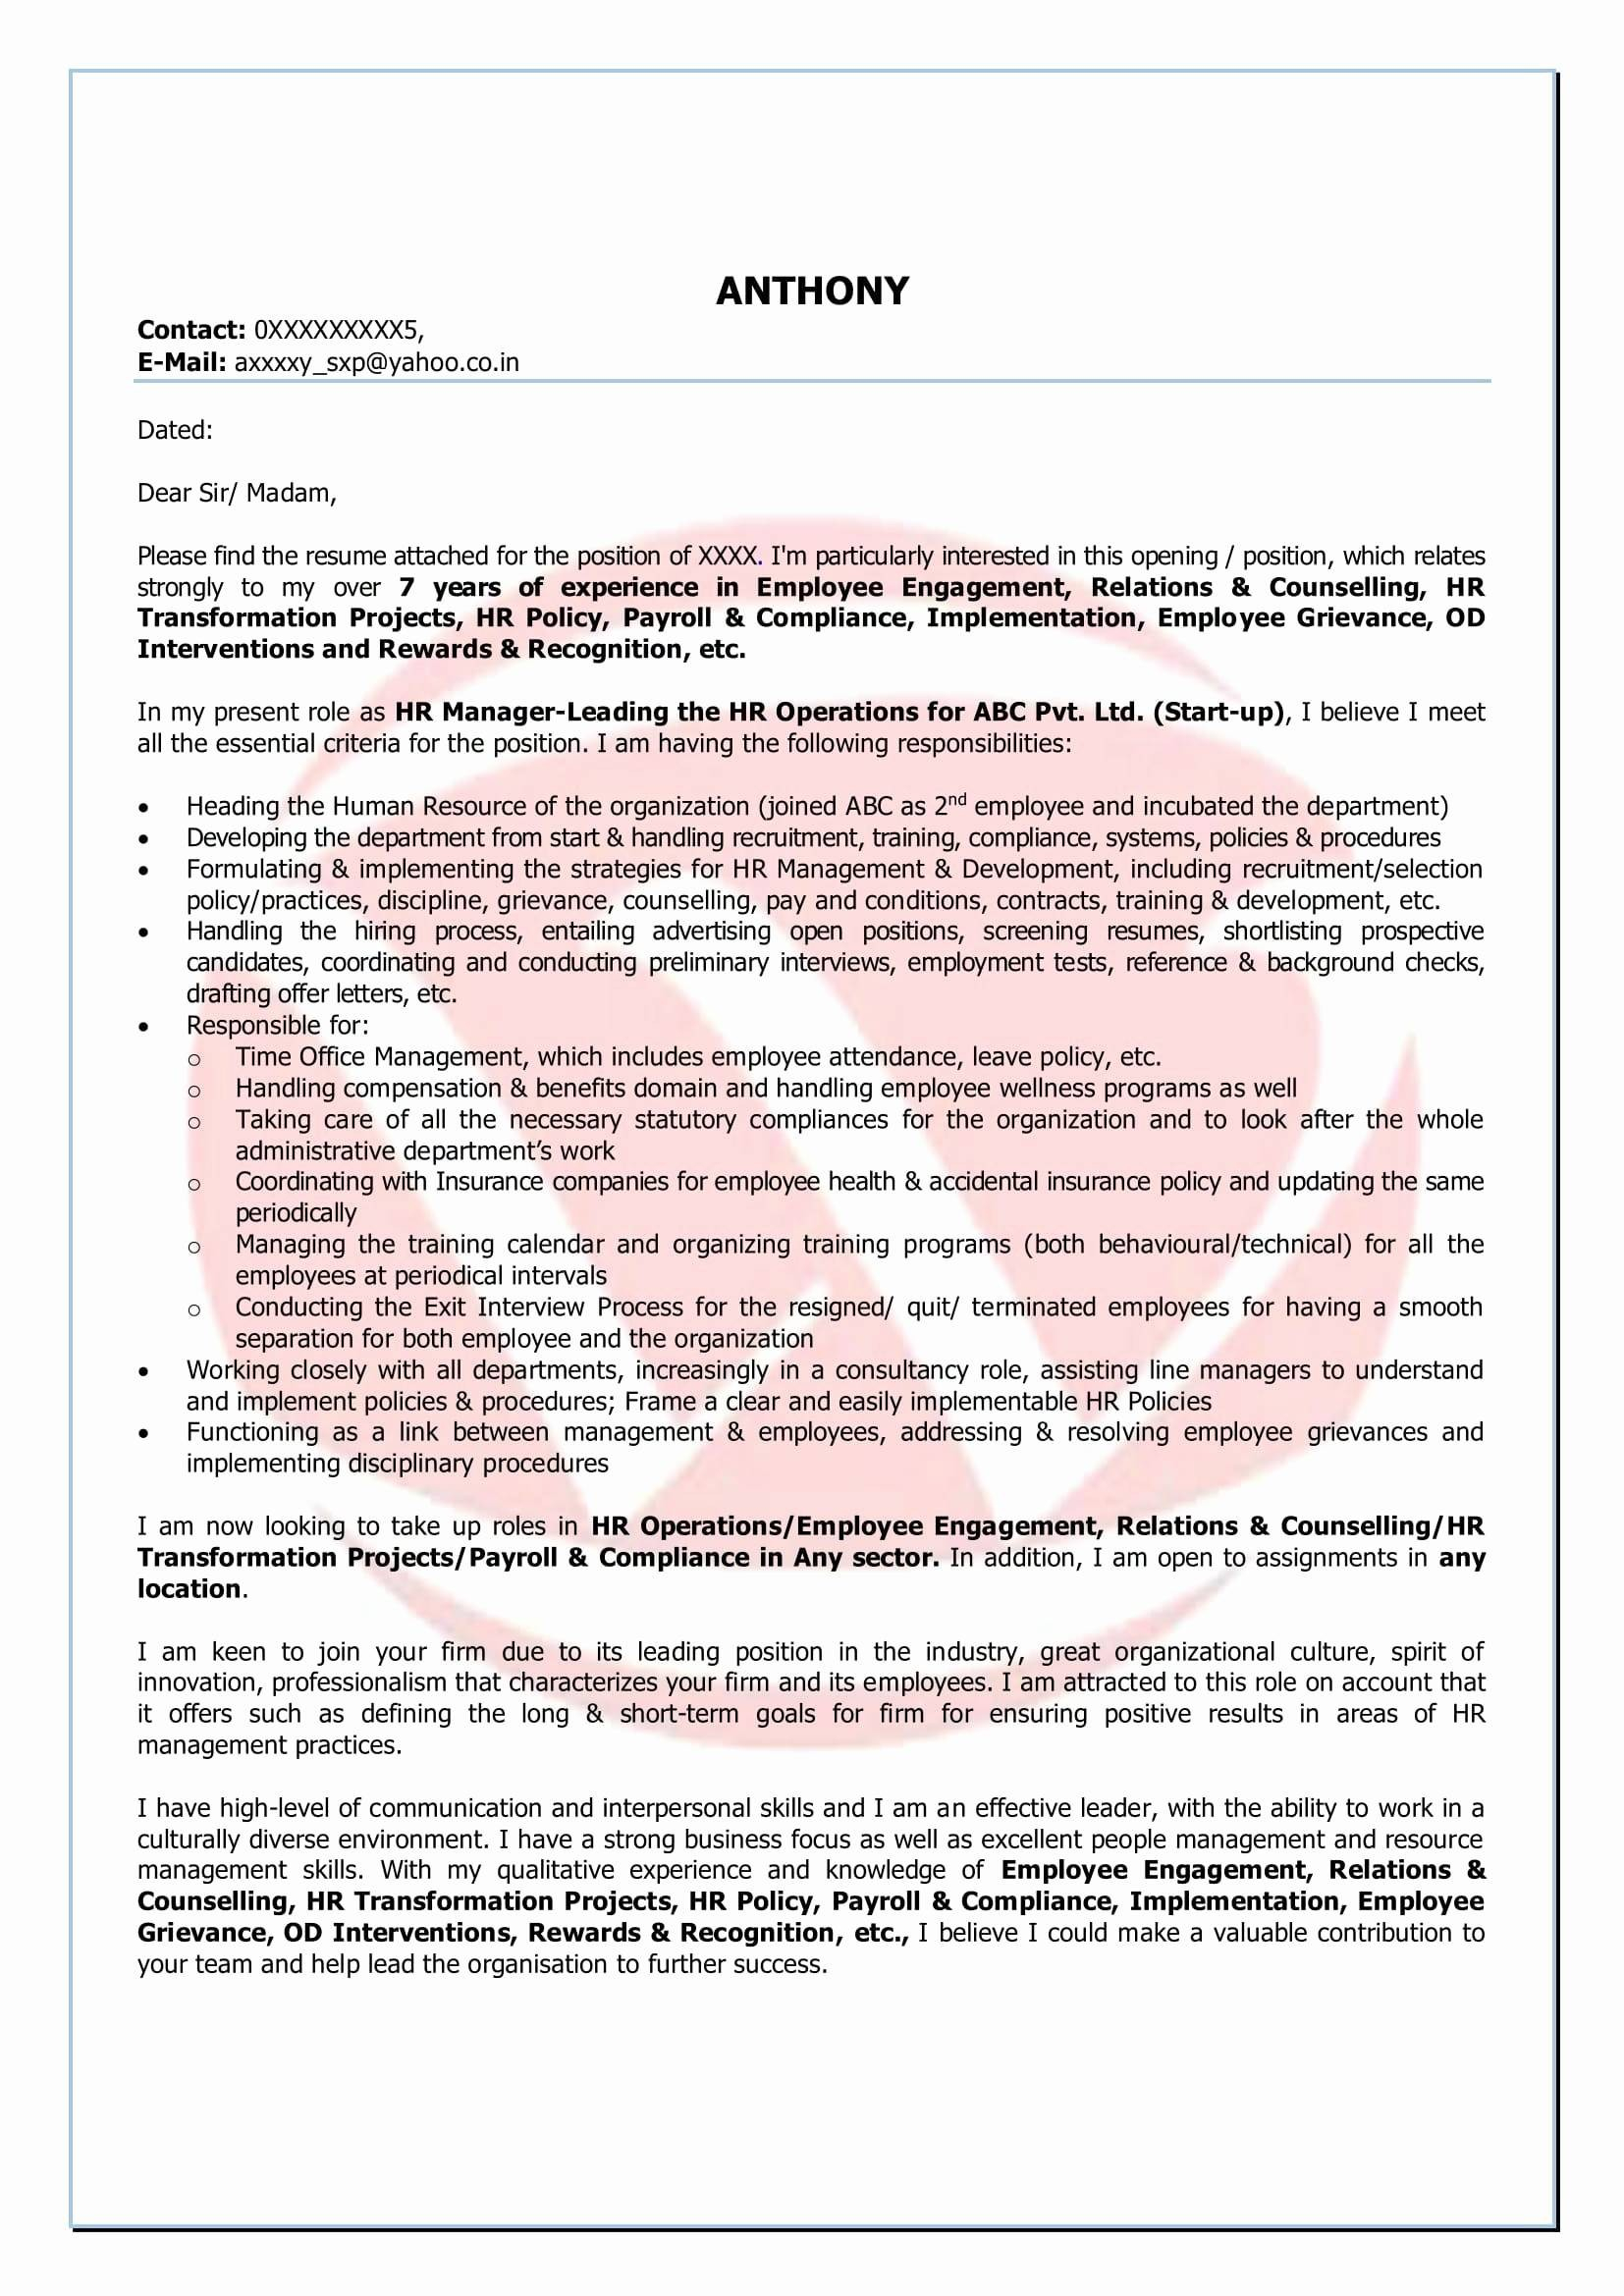 counselling letter template example-Microsoft fice Memo Template Inspirational Fresh Microsoft Fice Business Letter Template 12-q